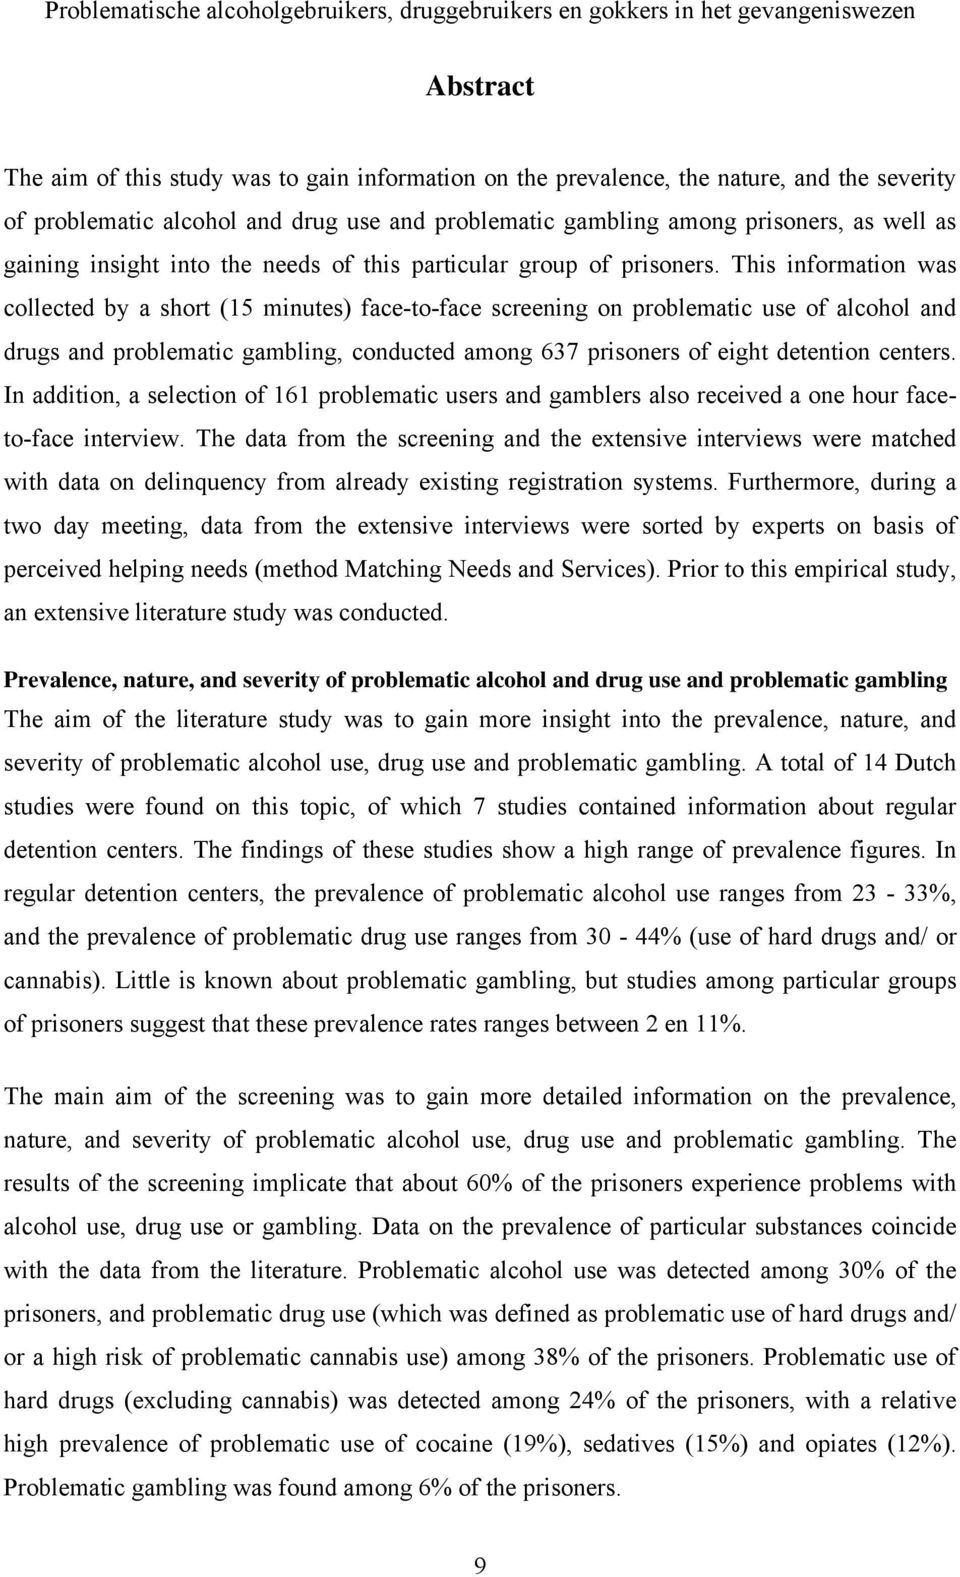 This information was collected by a short (15 minutes) face-to-face screening on problematic use of alcohol and drugs and problematic gambling, conducted among 637 prisoners of eight detention